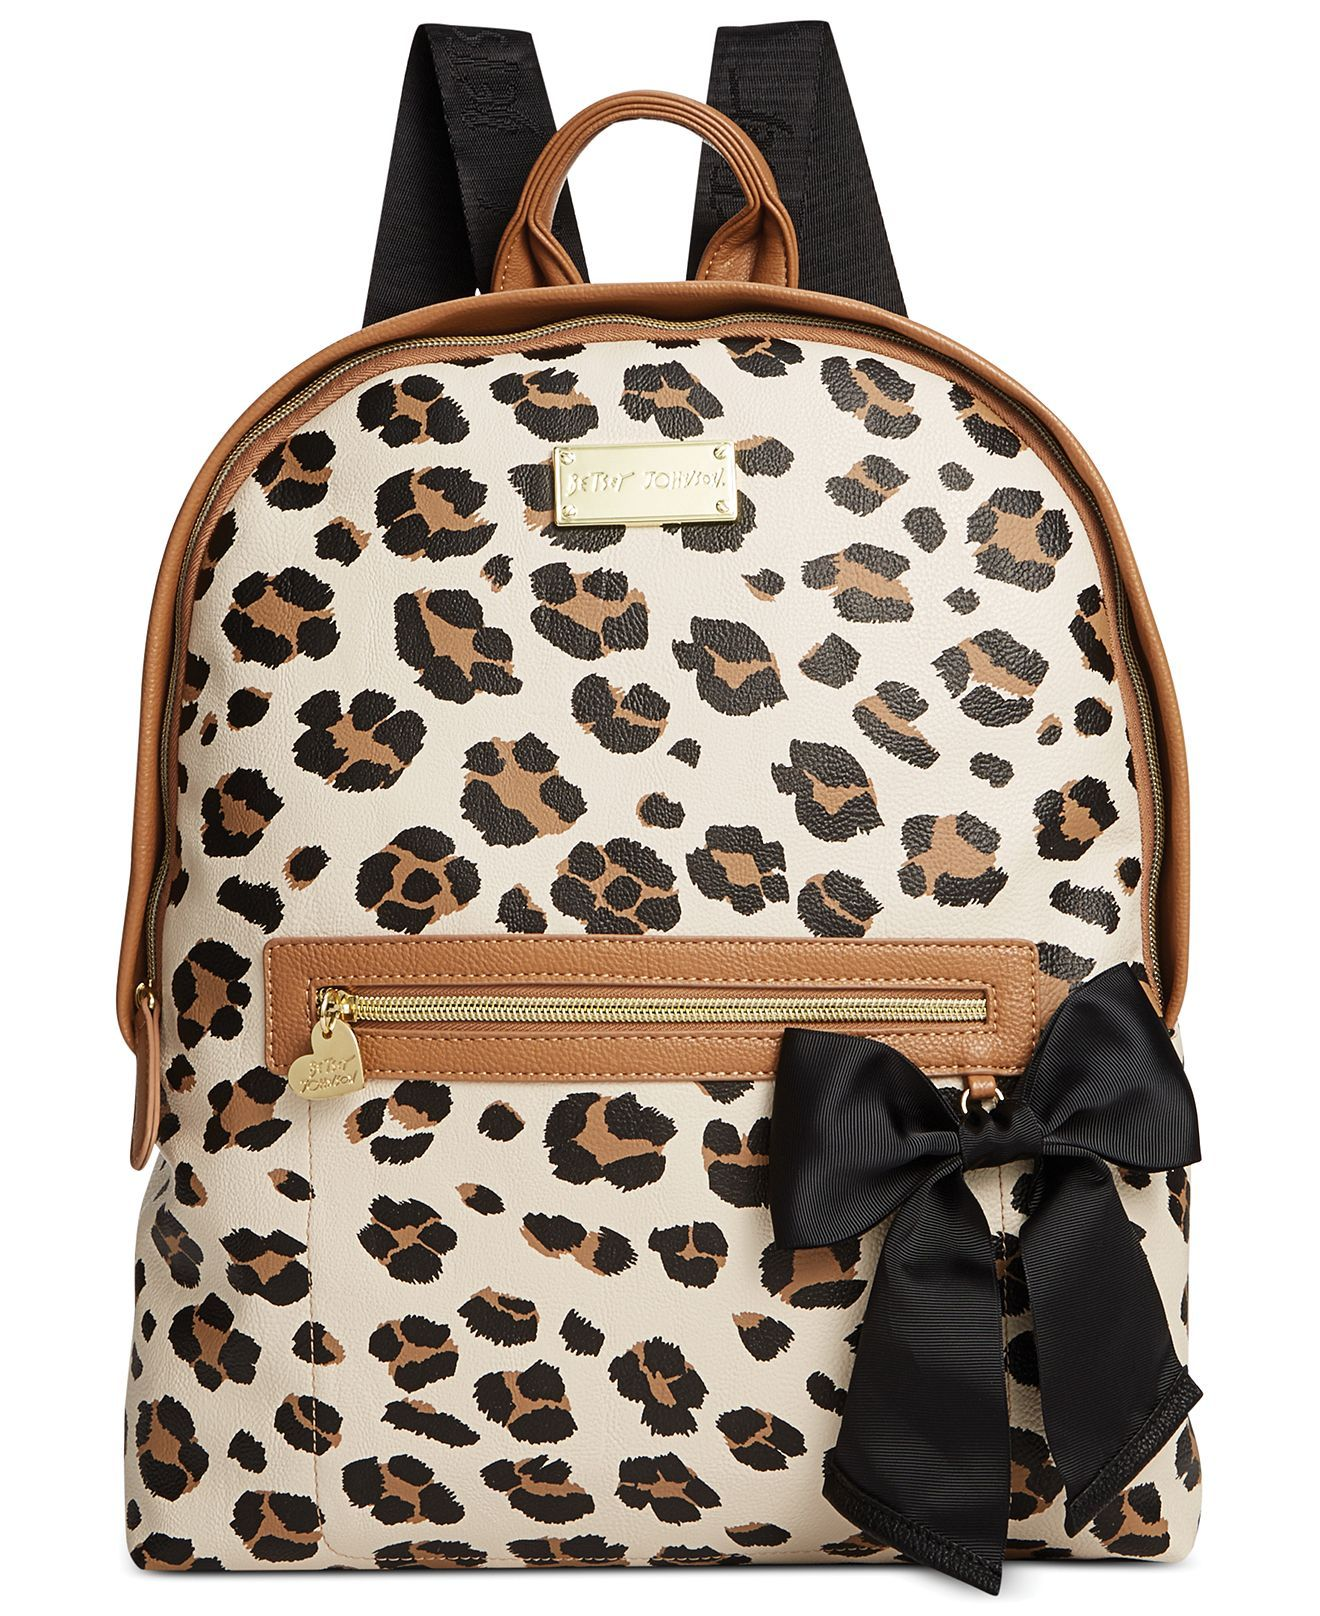 Betsey Johnson Quilted Backpack - All Handbags - Handbags   Accessories -  Macy s 616834a446339